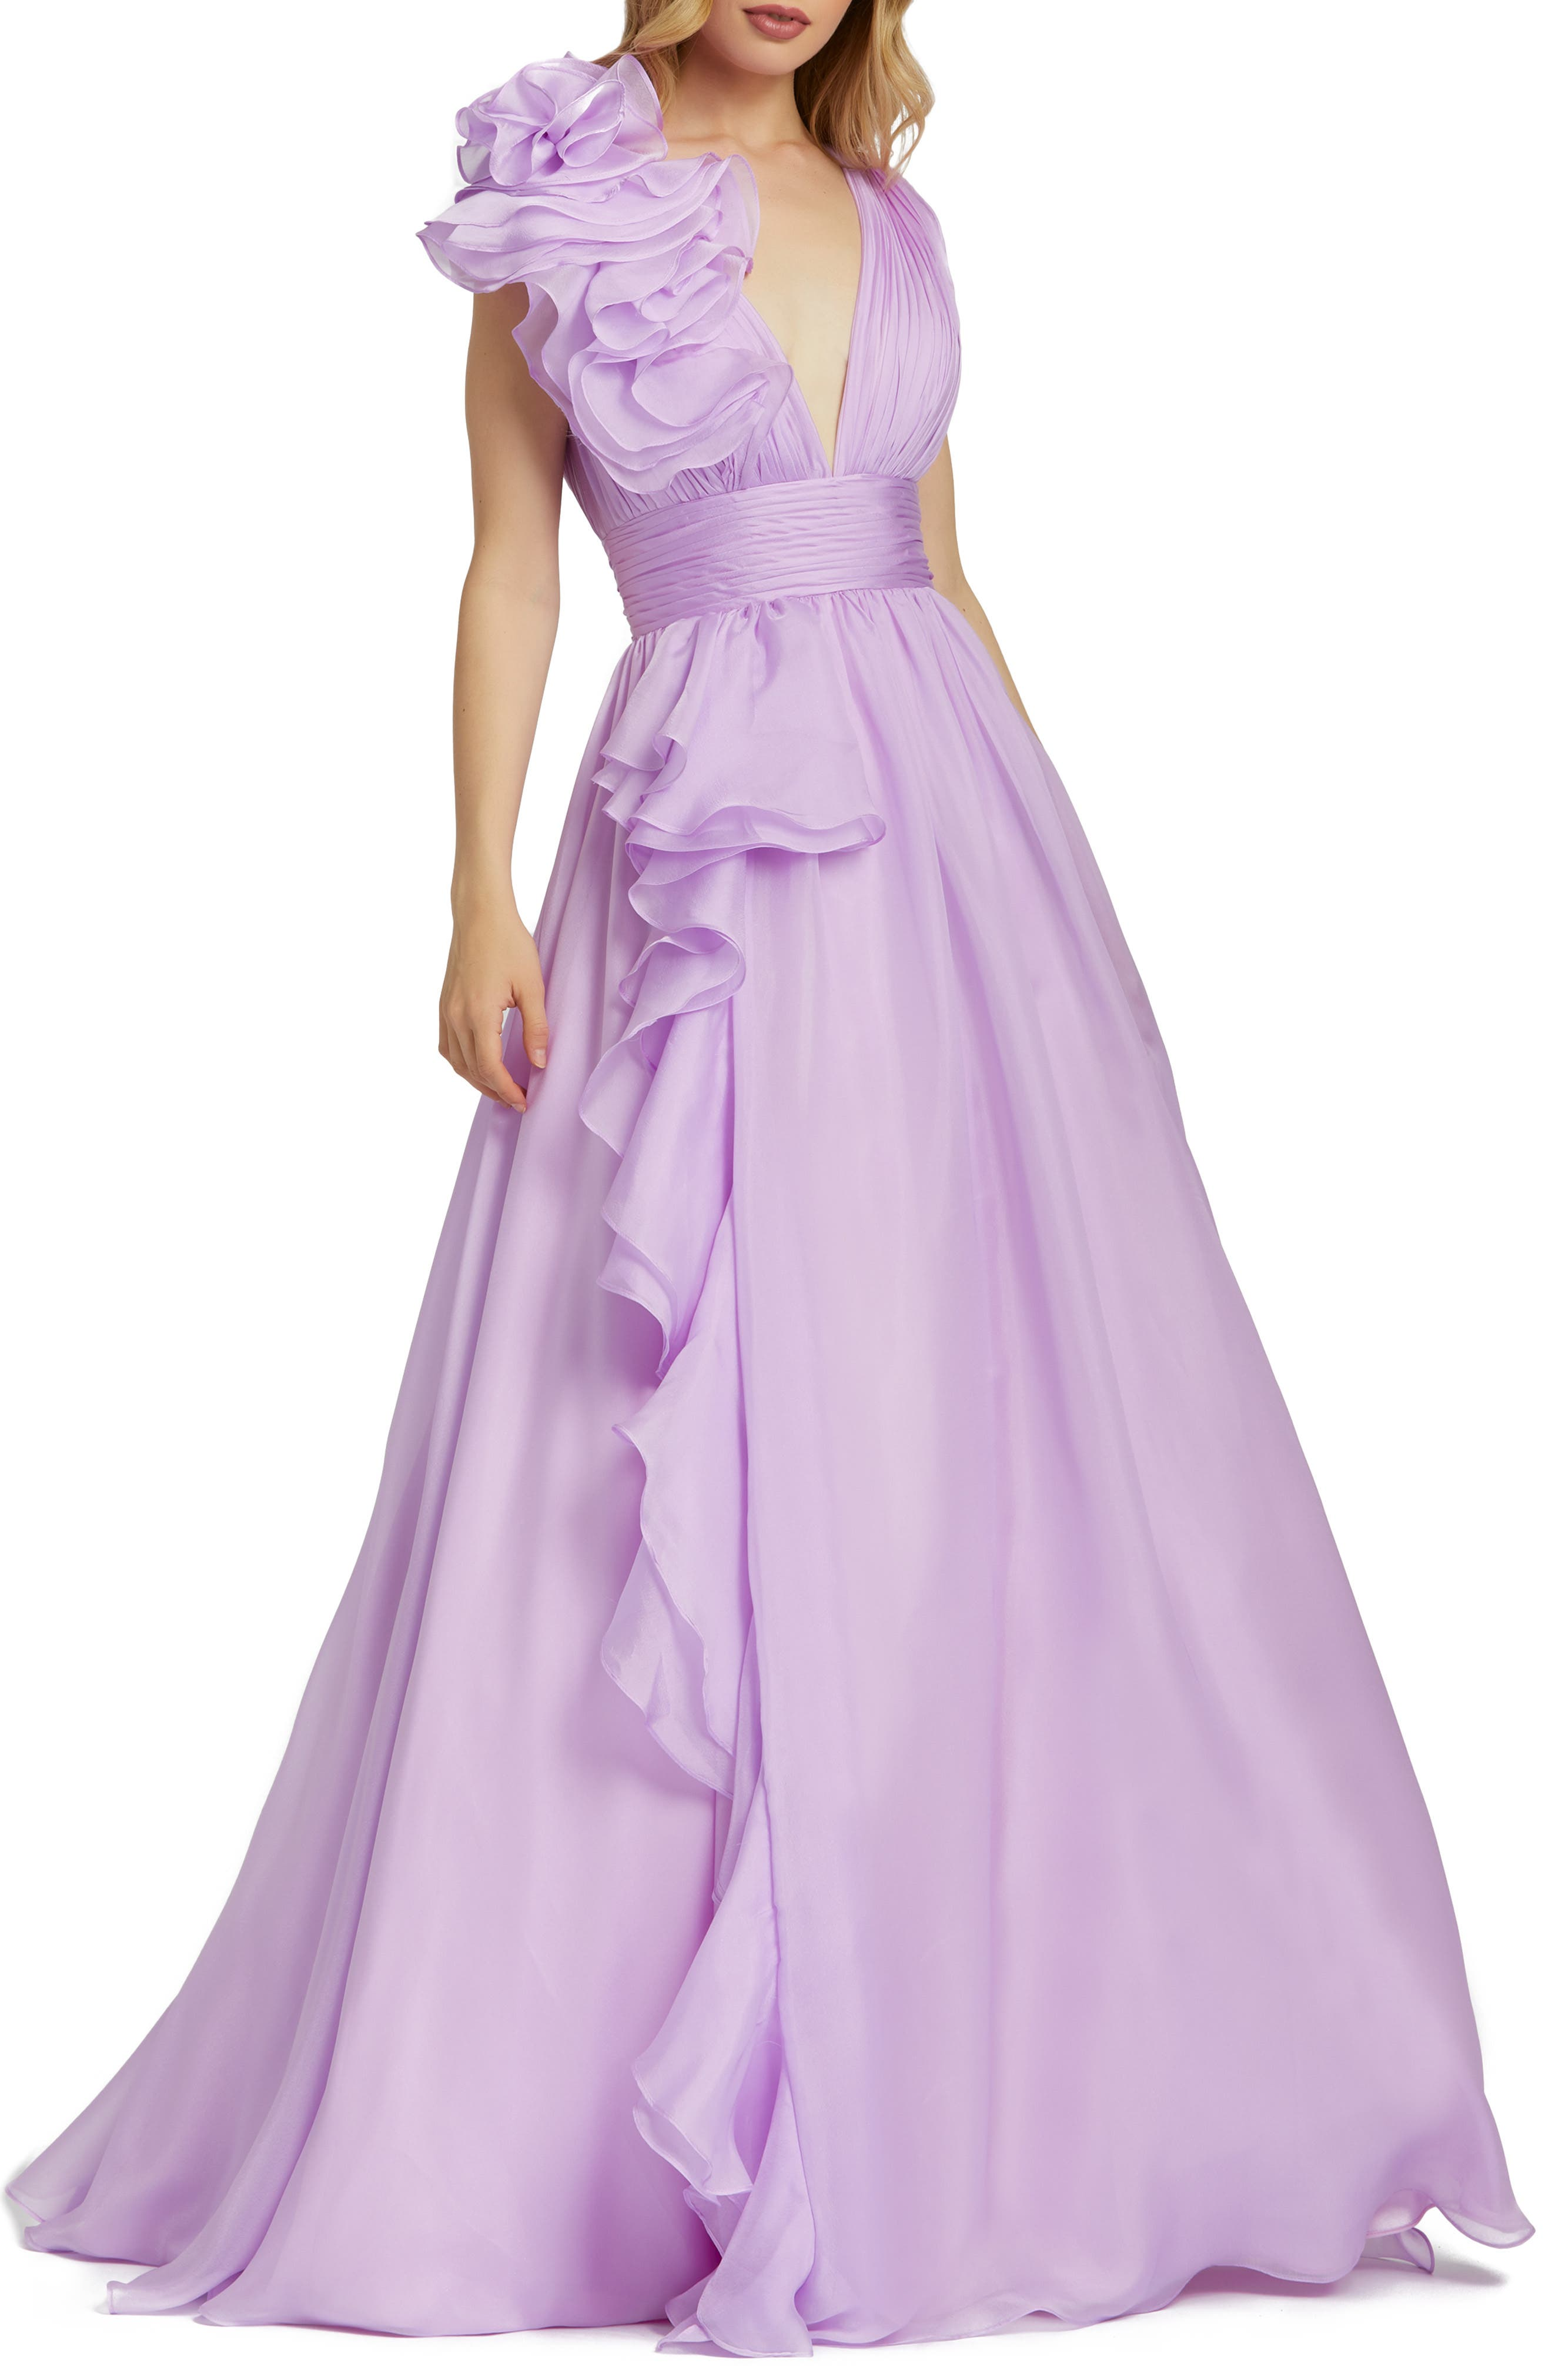 1980s Clothing, Fashion | 80s Style Clothes Womens MAC Duggal Ruffle Detail Ruched Chiffon Ballgown Size 4 - Purple $398.00 AT vintagedancer.com